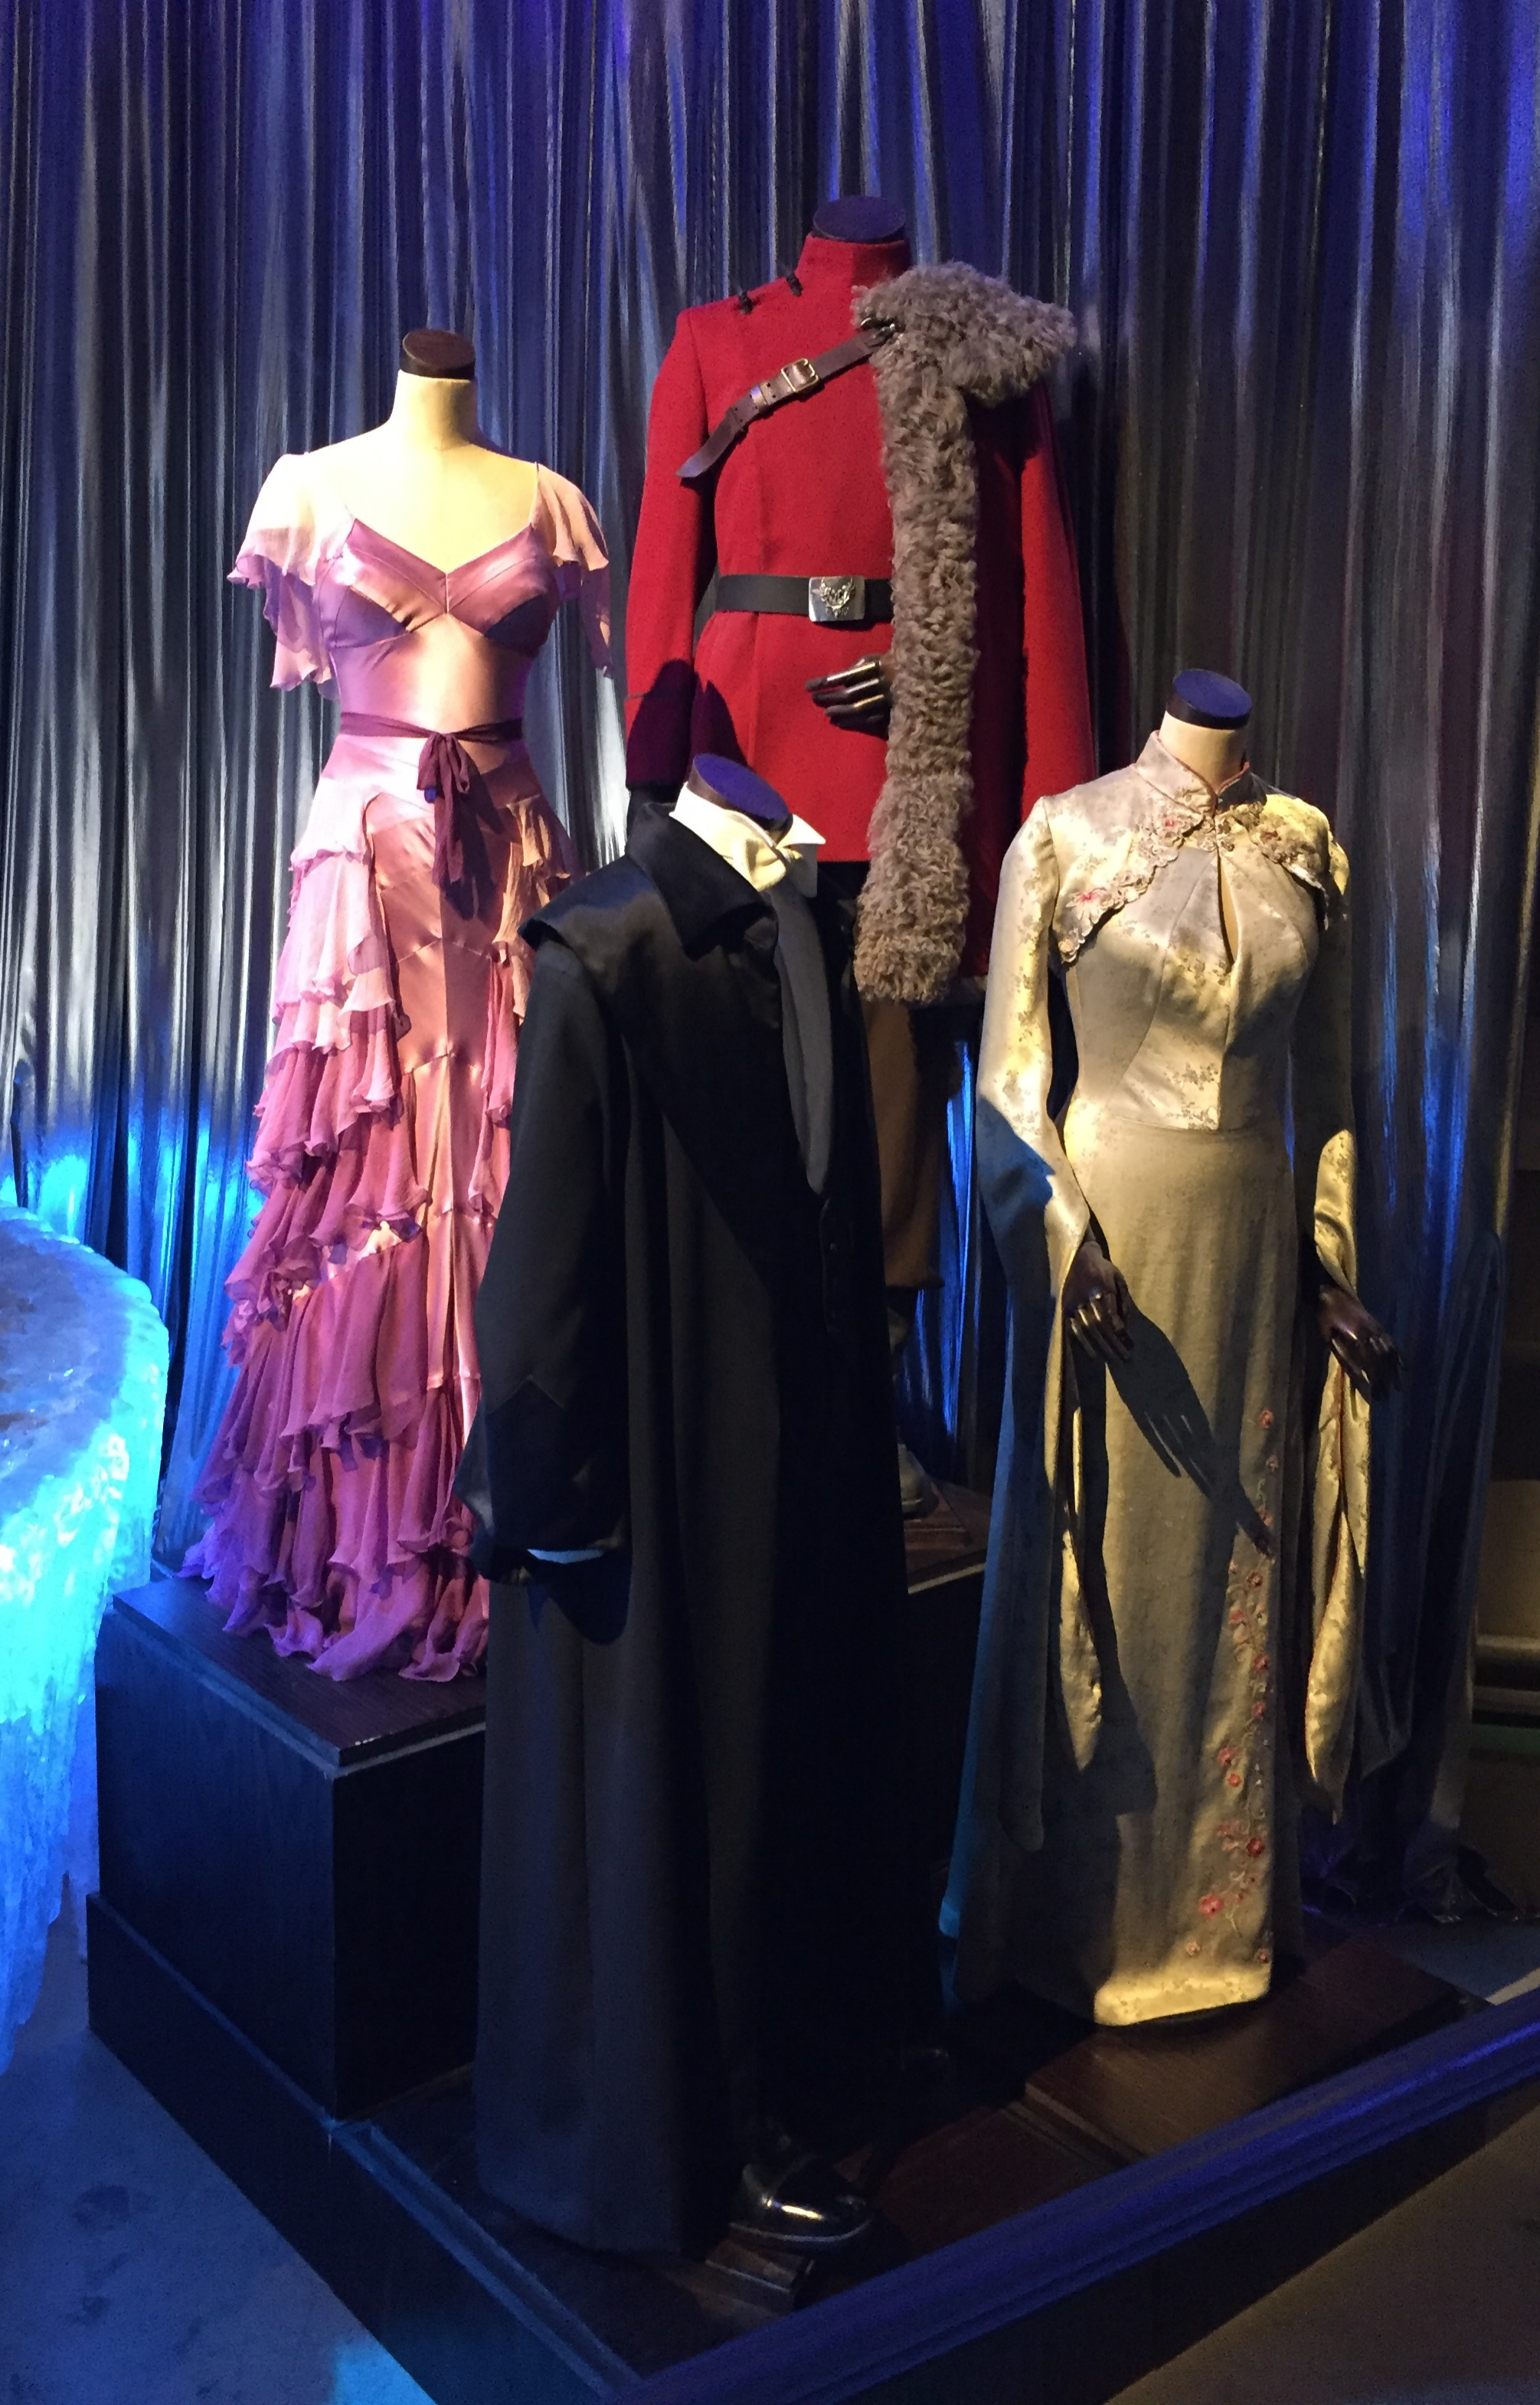 Yule Ball costumes WBSTL